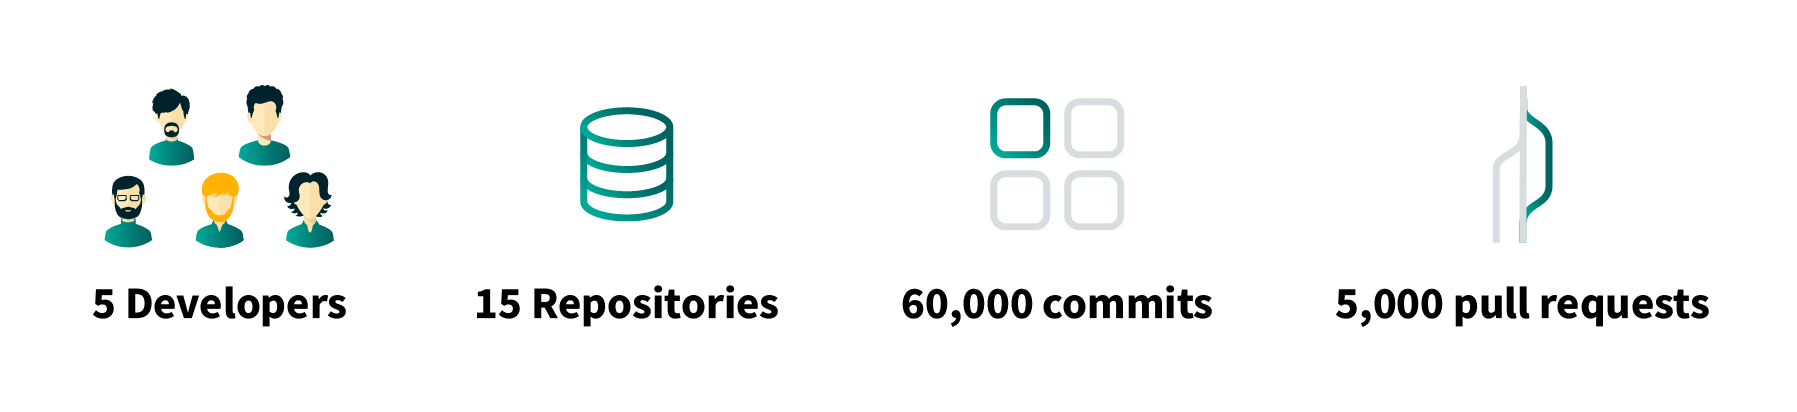 A chart illustrating some facts from the development team: 5 developers, 15 repositories, 60,000 commits, 5,000 pull requests.